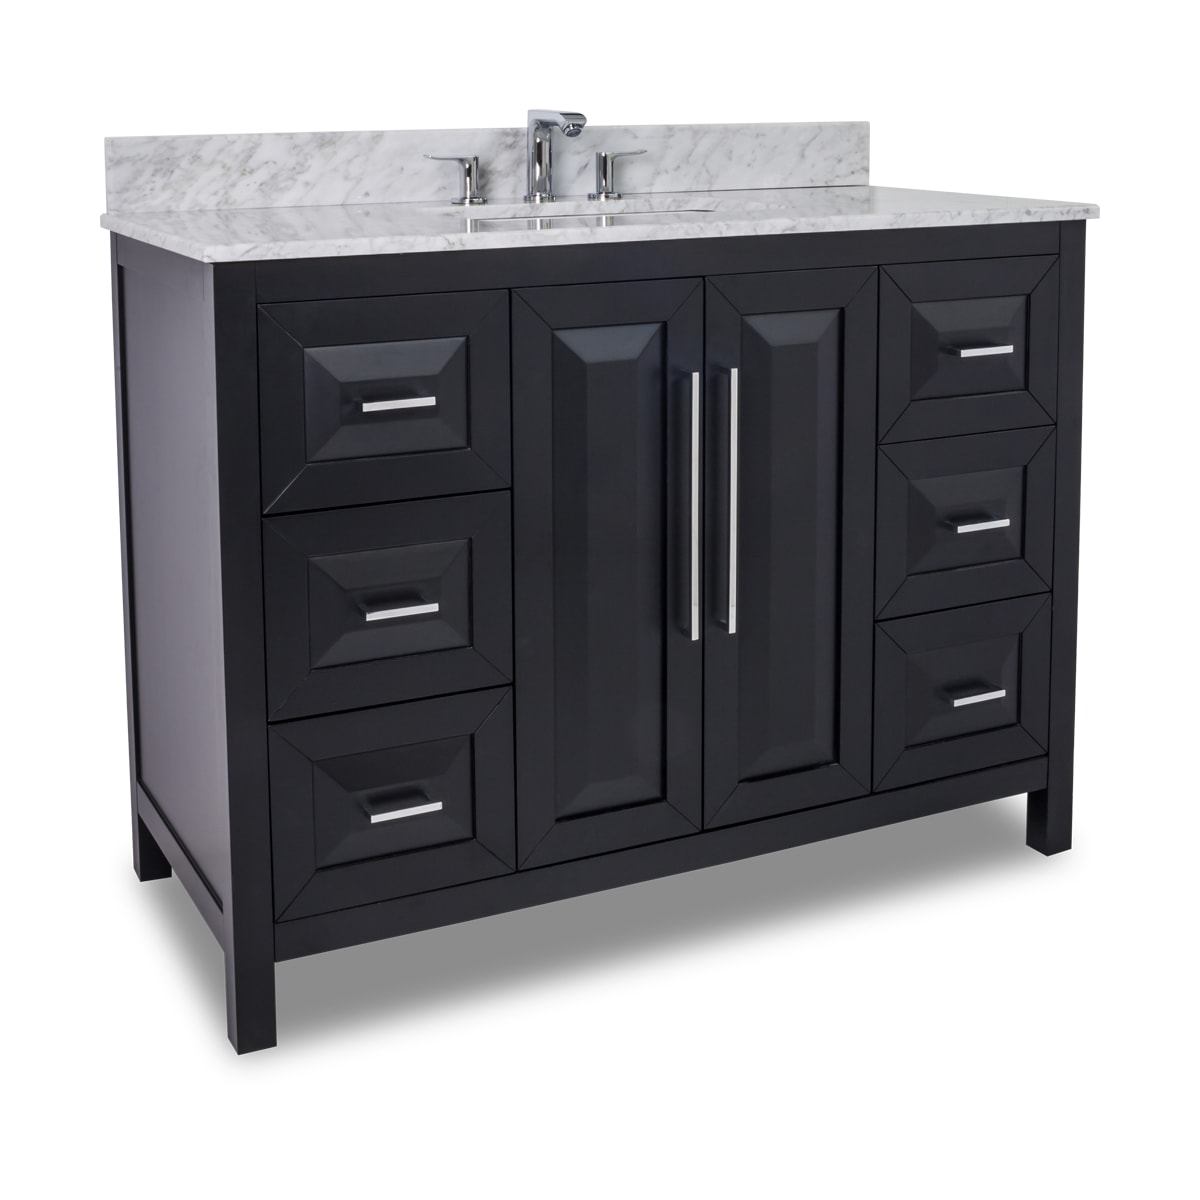 Jeffrey Alexander Van101 48 T Black Cade Contempo Collection 48 Inch Wide Bathroom Vanity Cabinet With Counter Top And Sink Faucet Not Included Faucetdirect Com